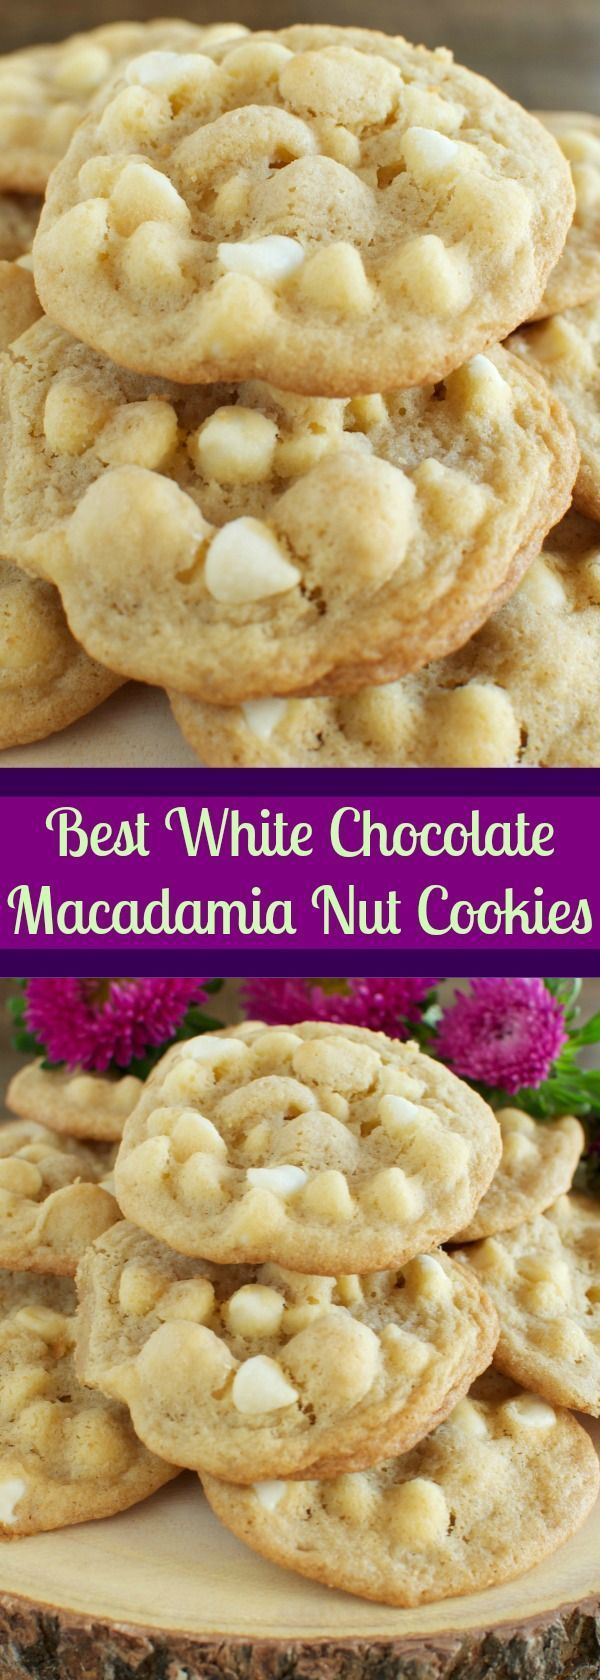 best 25+ white chocolate cookies ideas only on pinterest | white